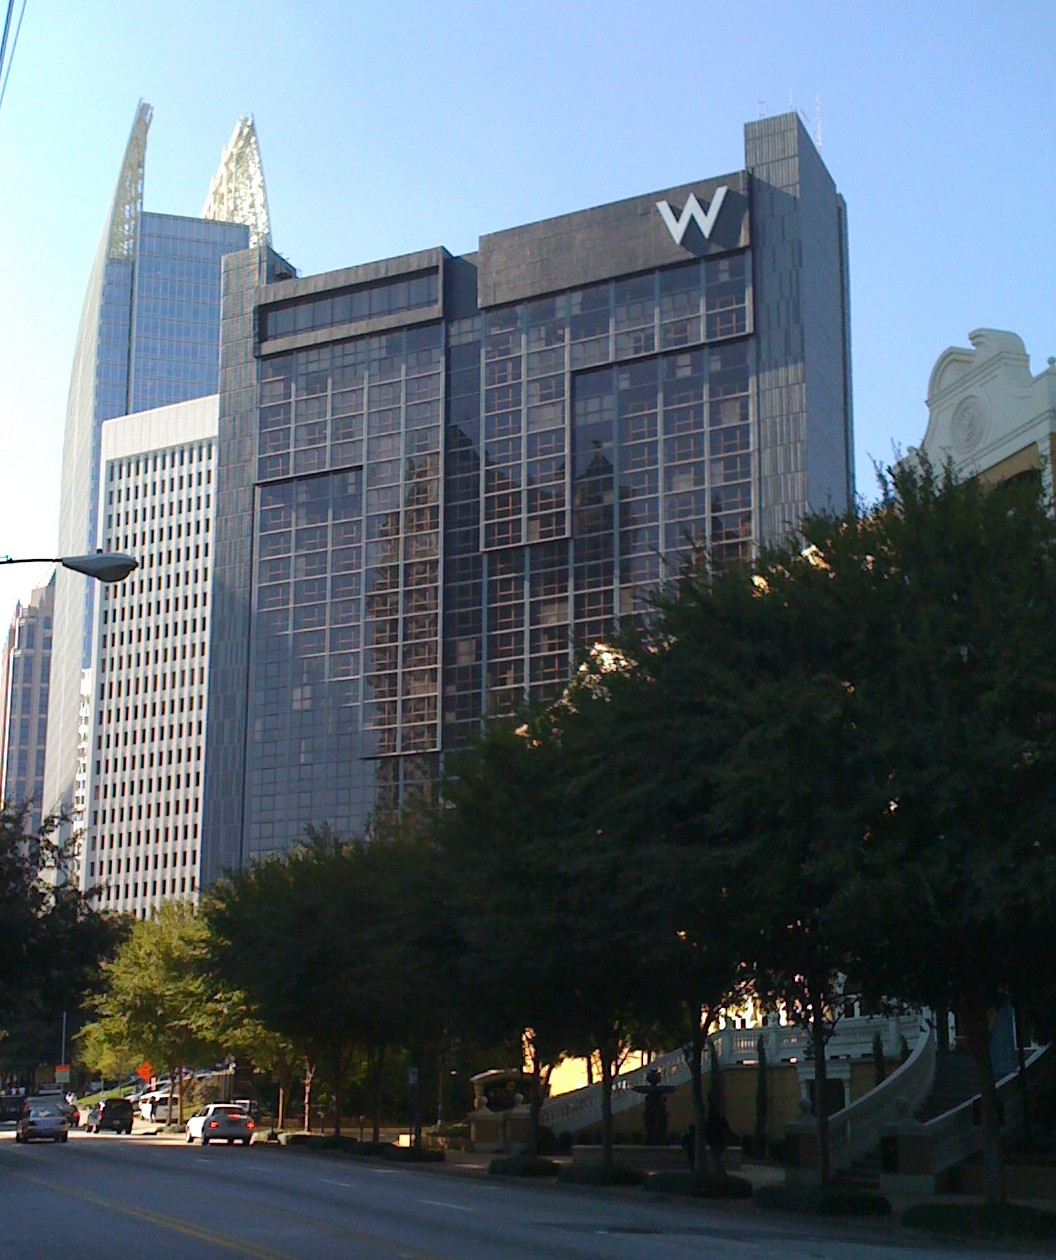 Three Lawsuits Filed In W Hotel Fall Update On Survivor S Condition Photos Video